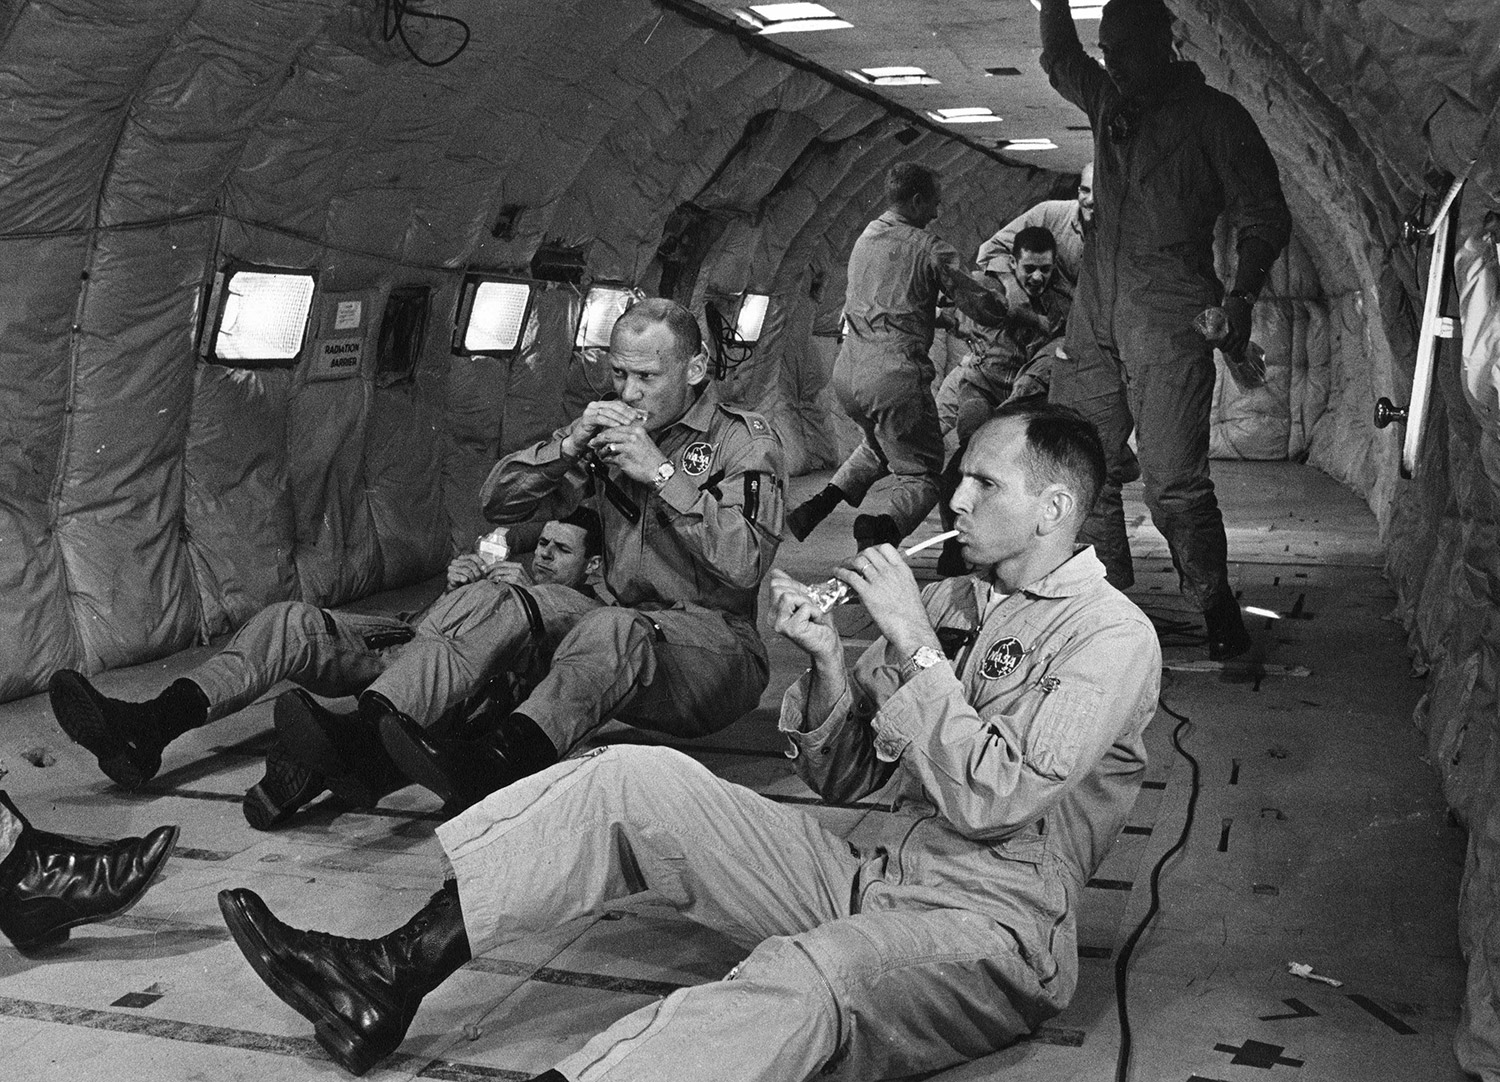 While flying parabolic arcs to simulate weightlessness aboard a KC-135 at Wright-Patterson AFB in August of 1964, Buzz Aldrin attempts to consume a container of space food. Fellow NASA astronauts Charlie Bassett (left) and Ted Freeman (right) are also trying to eat the specially prepared food. Credit: NASA via Retro Space Images